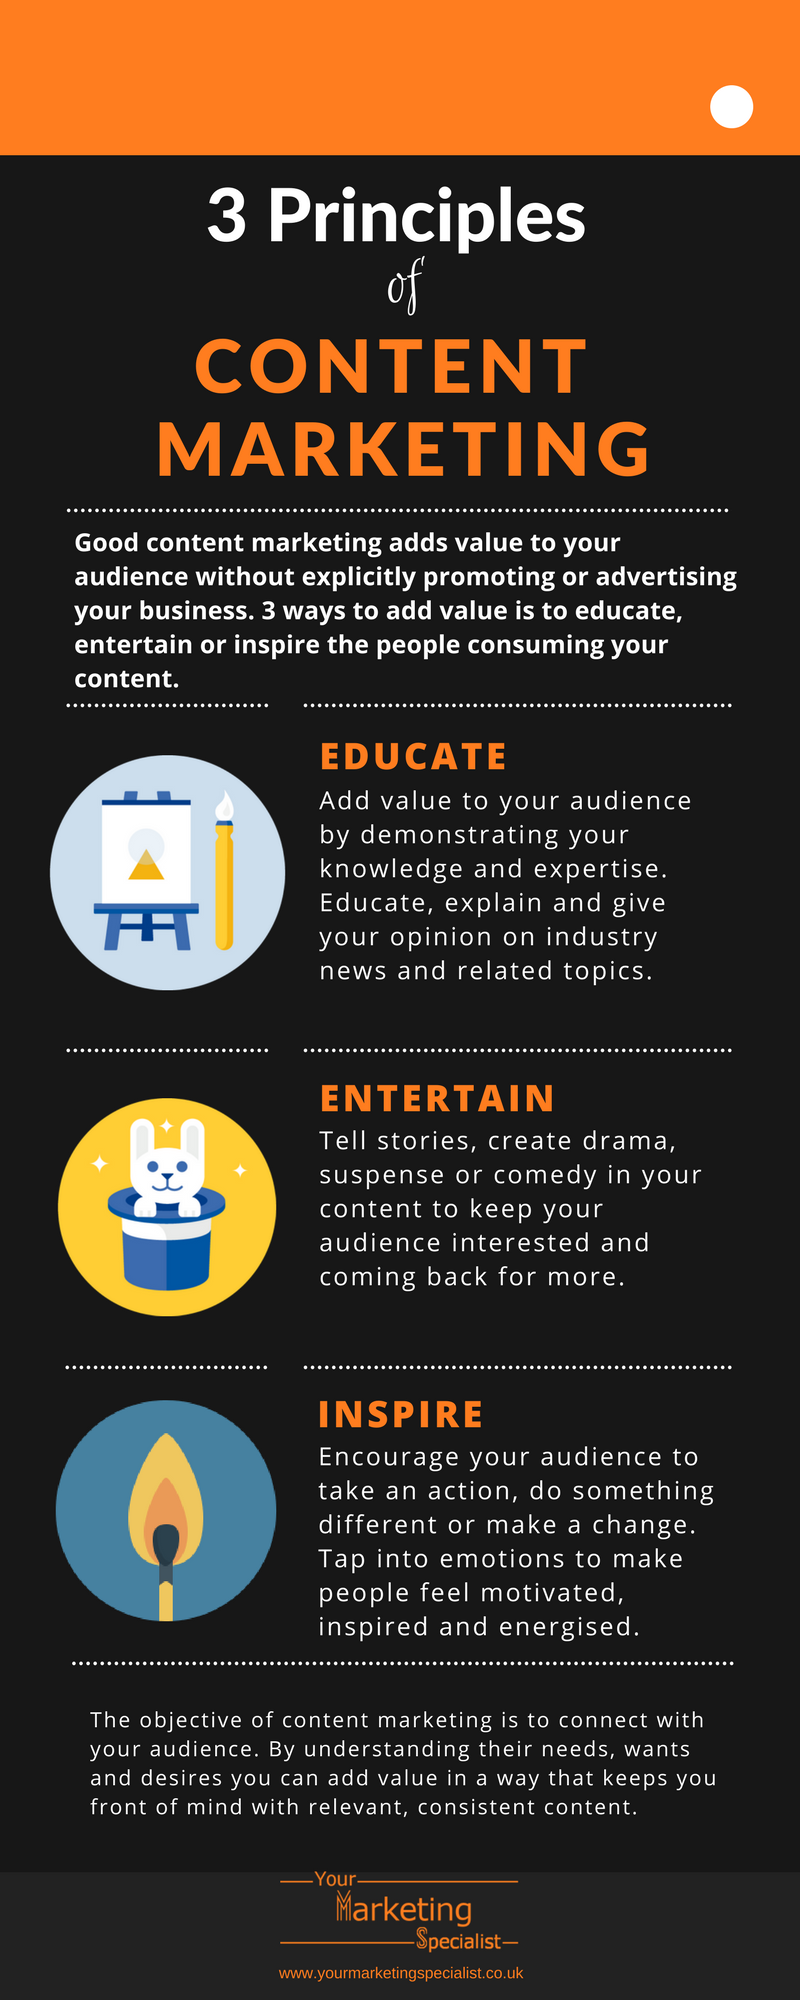 3 Principles of Content Marketing